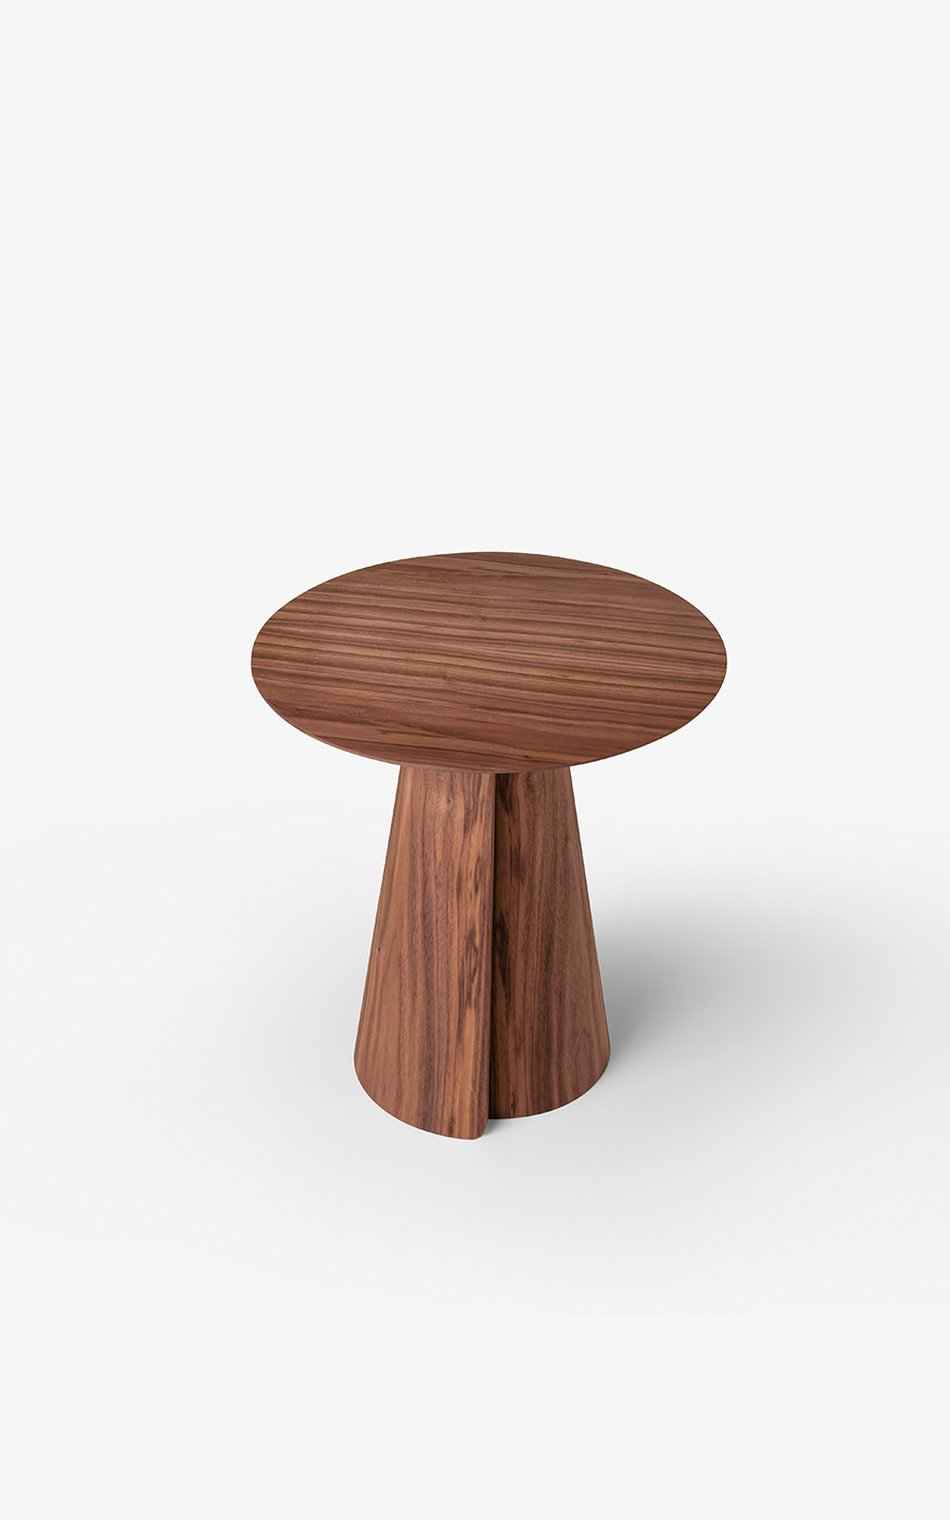 MESA LATERAL VOLTA | VOLTA SIDE TABLE